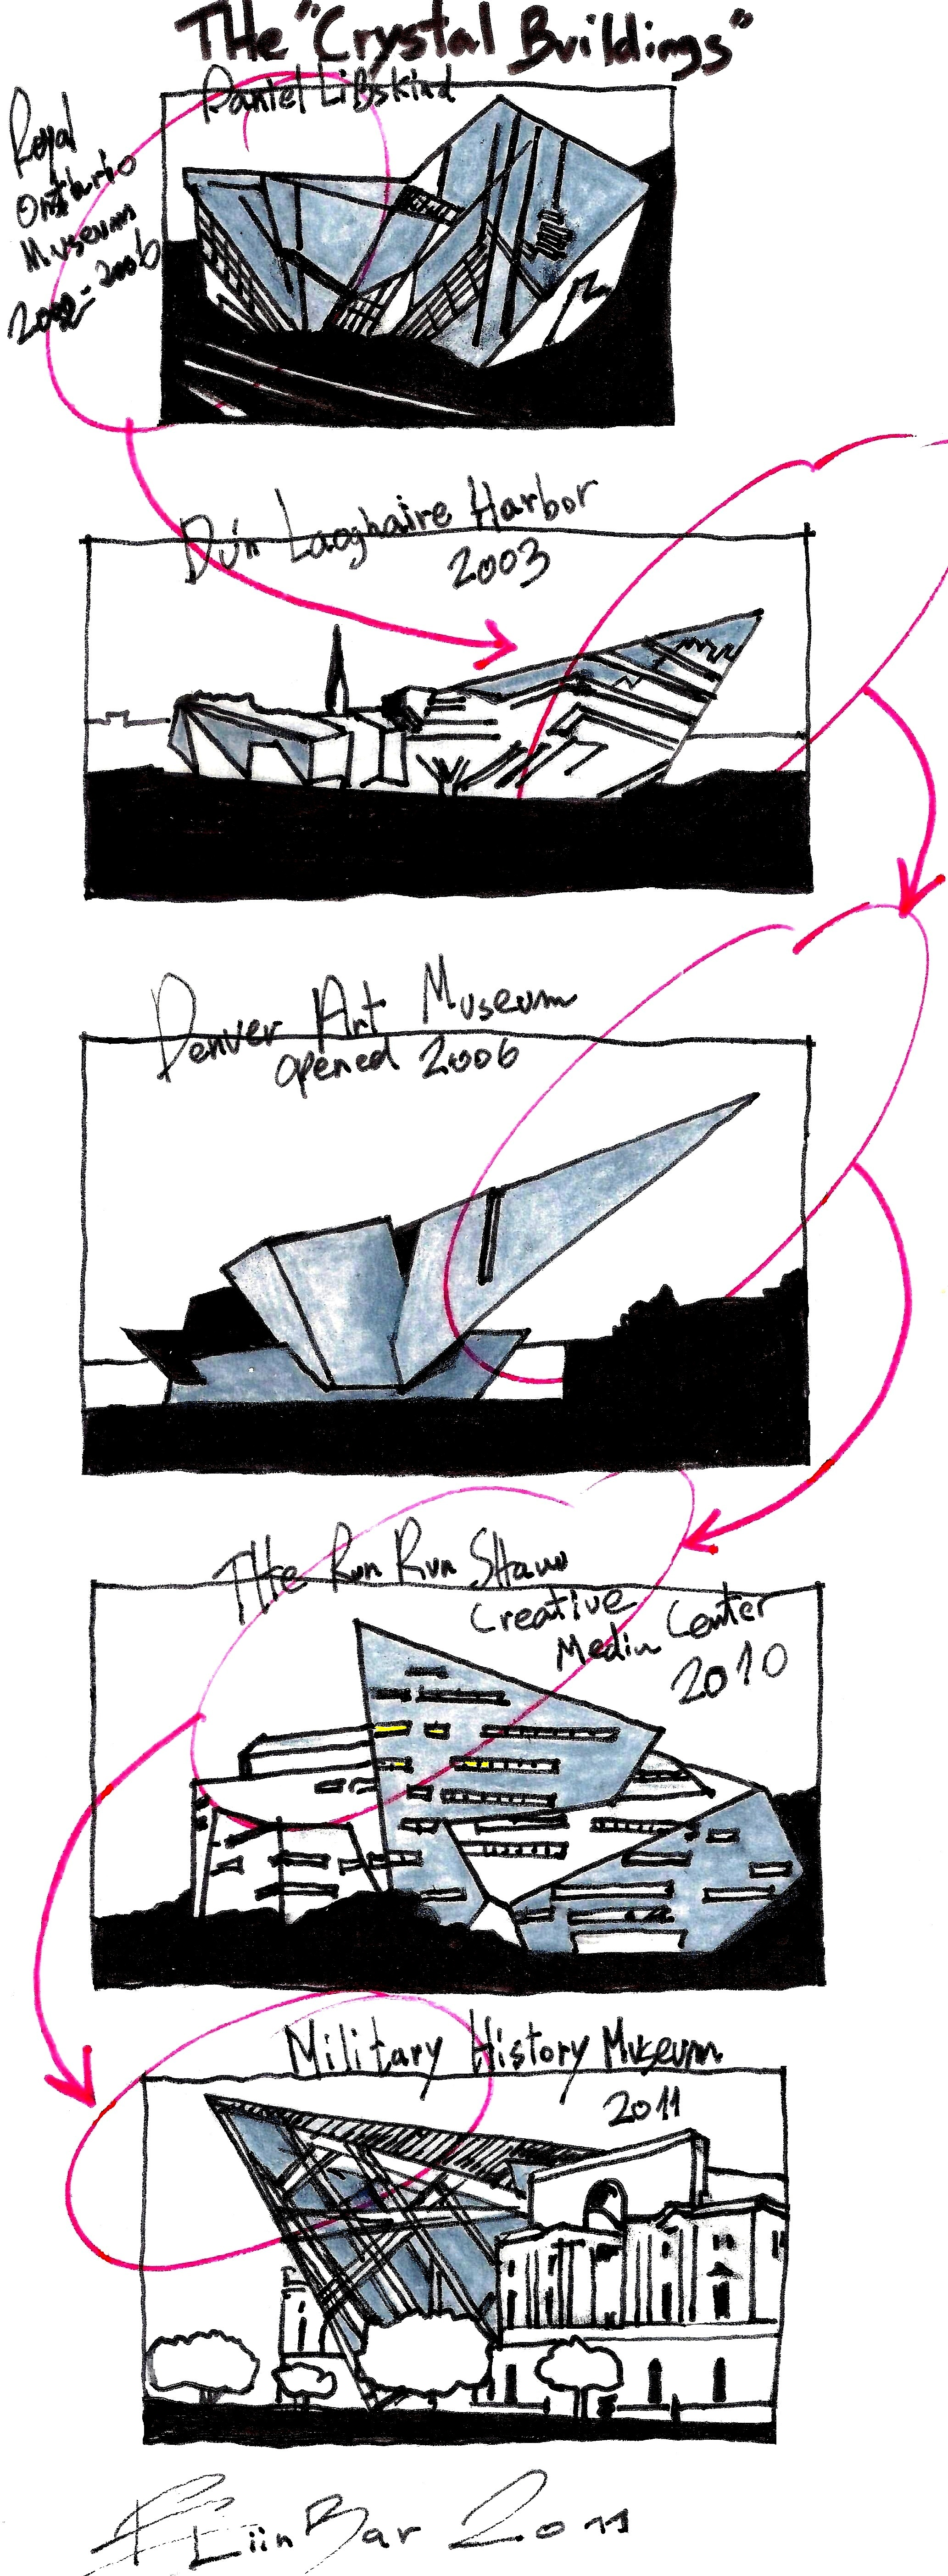 Zaha hadid s inspiration sources someone has built it before for Denver art museum concept